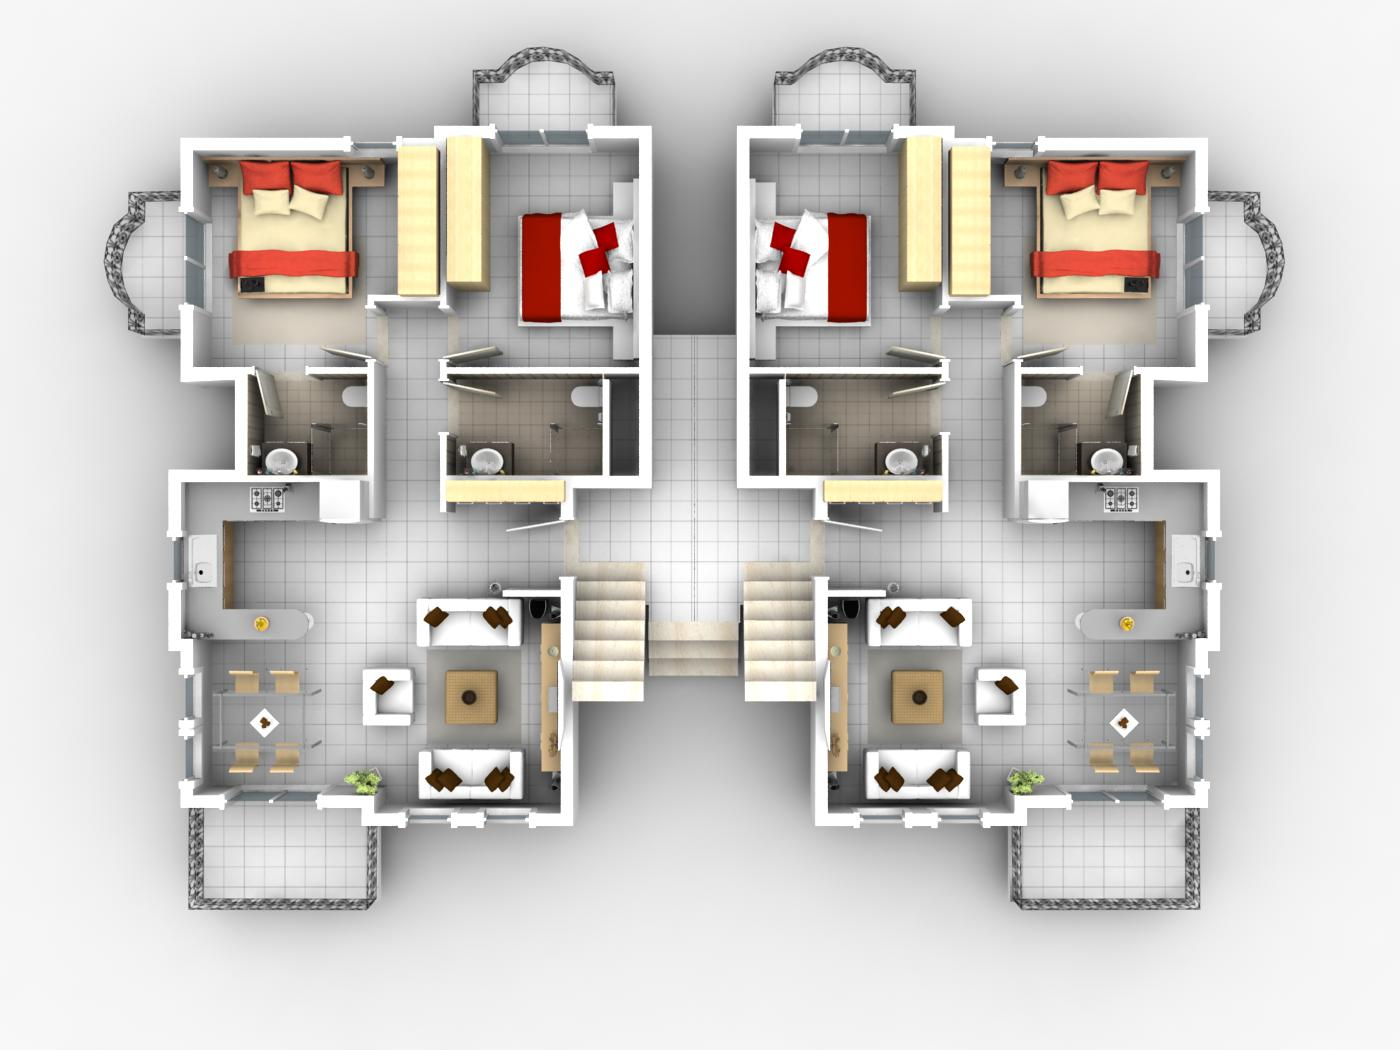 Apartment Building Floor Plan Designs